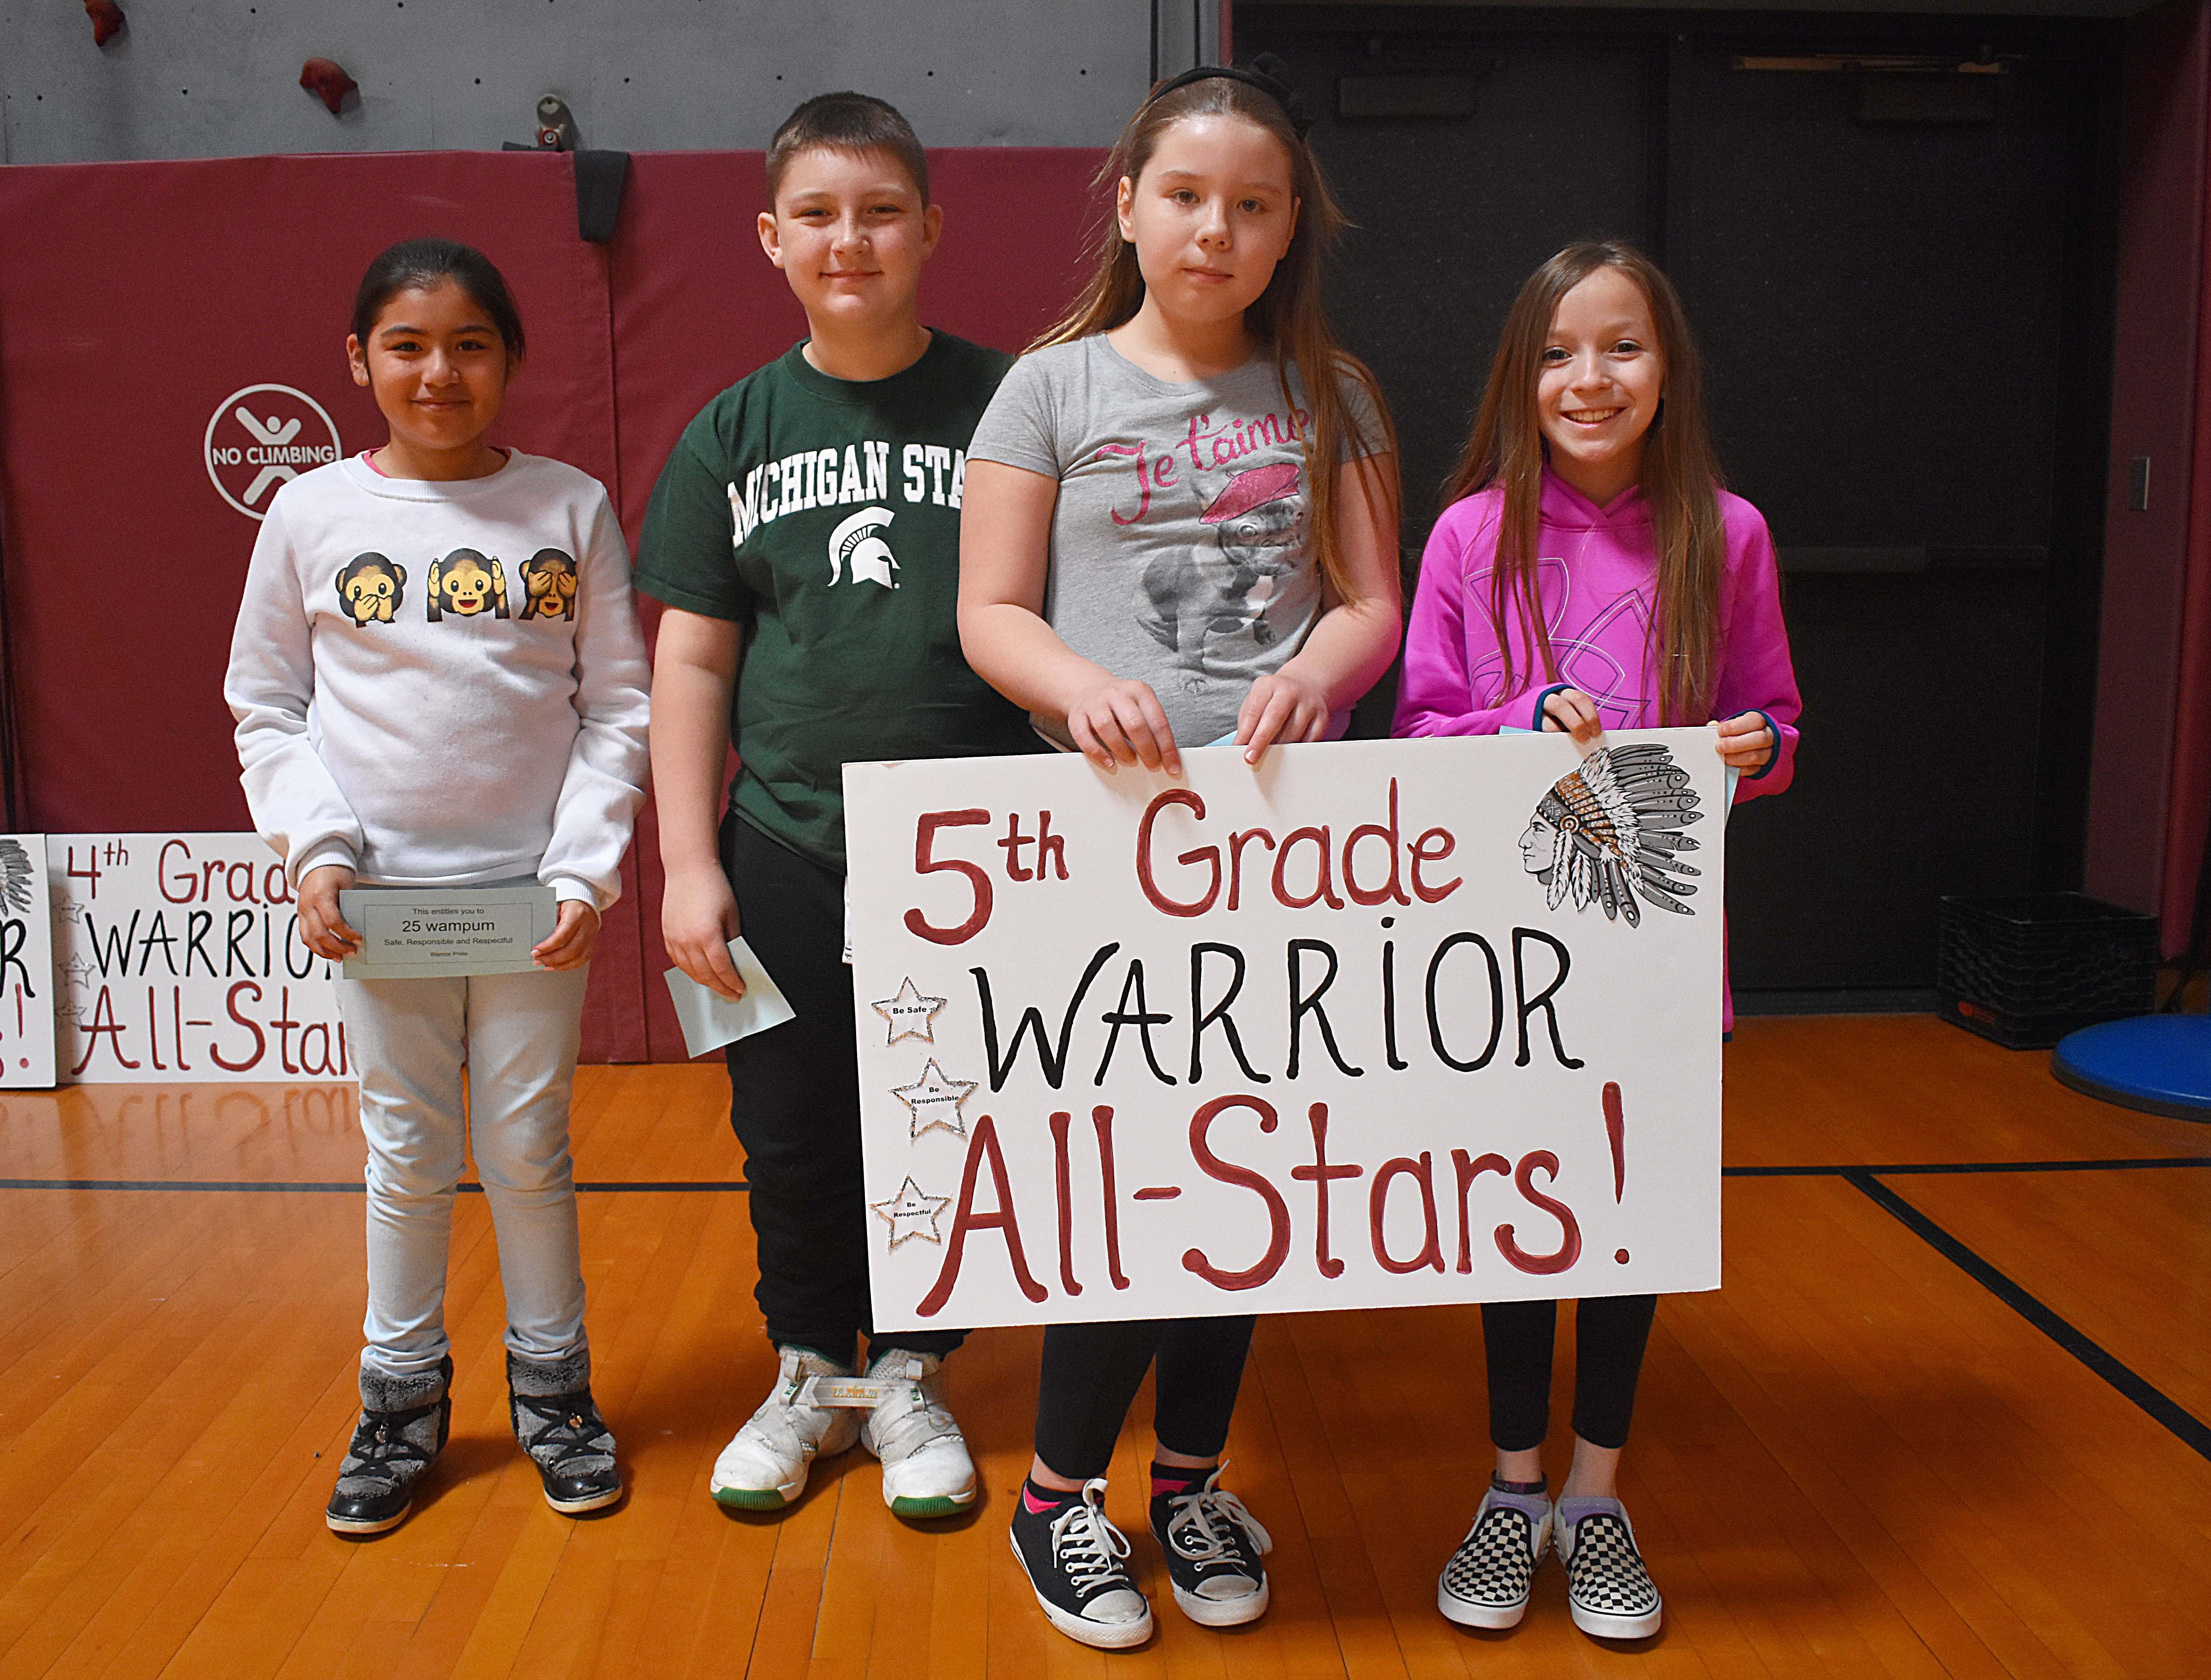 Students standing with fifth grade sign